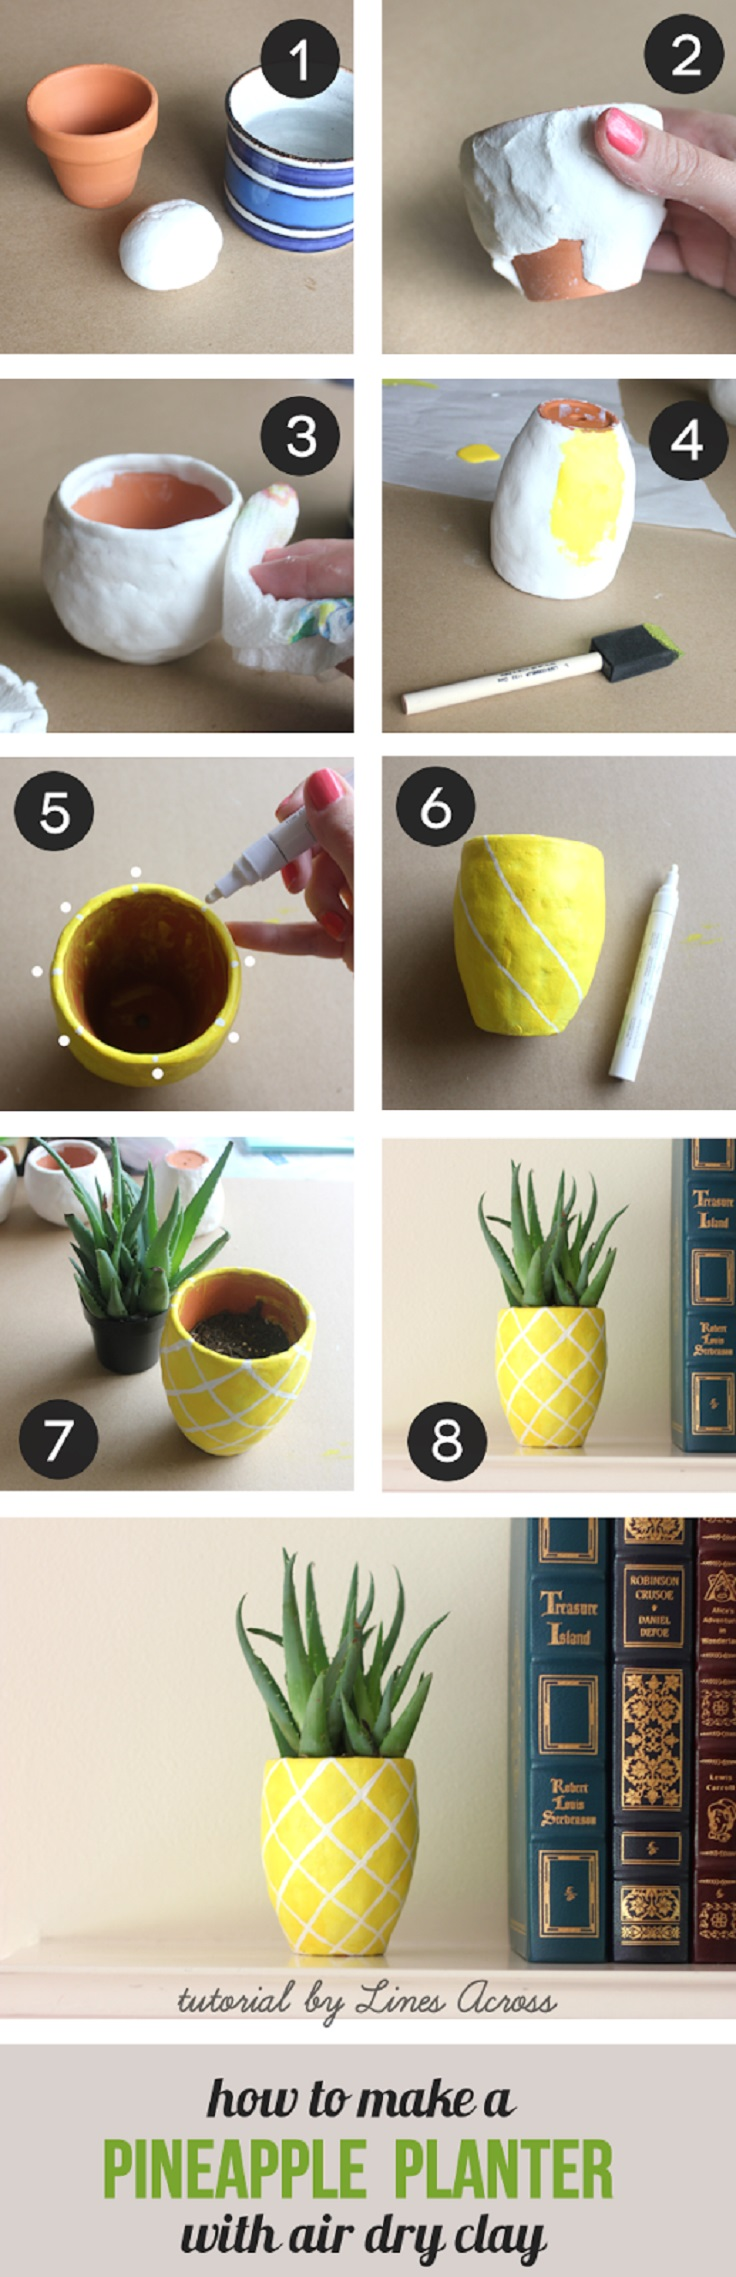 10 fun diy projects with succulents garden pics and tips for Interesting diy projects